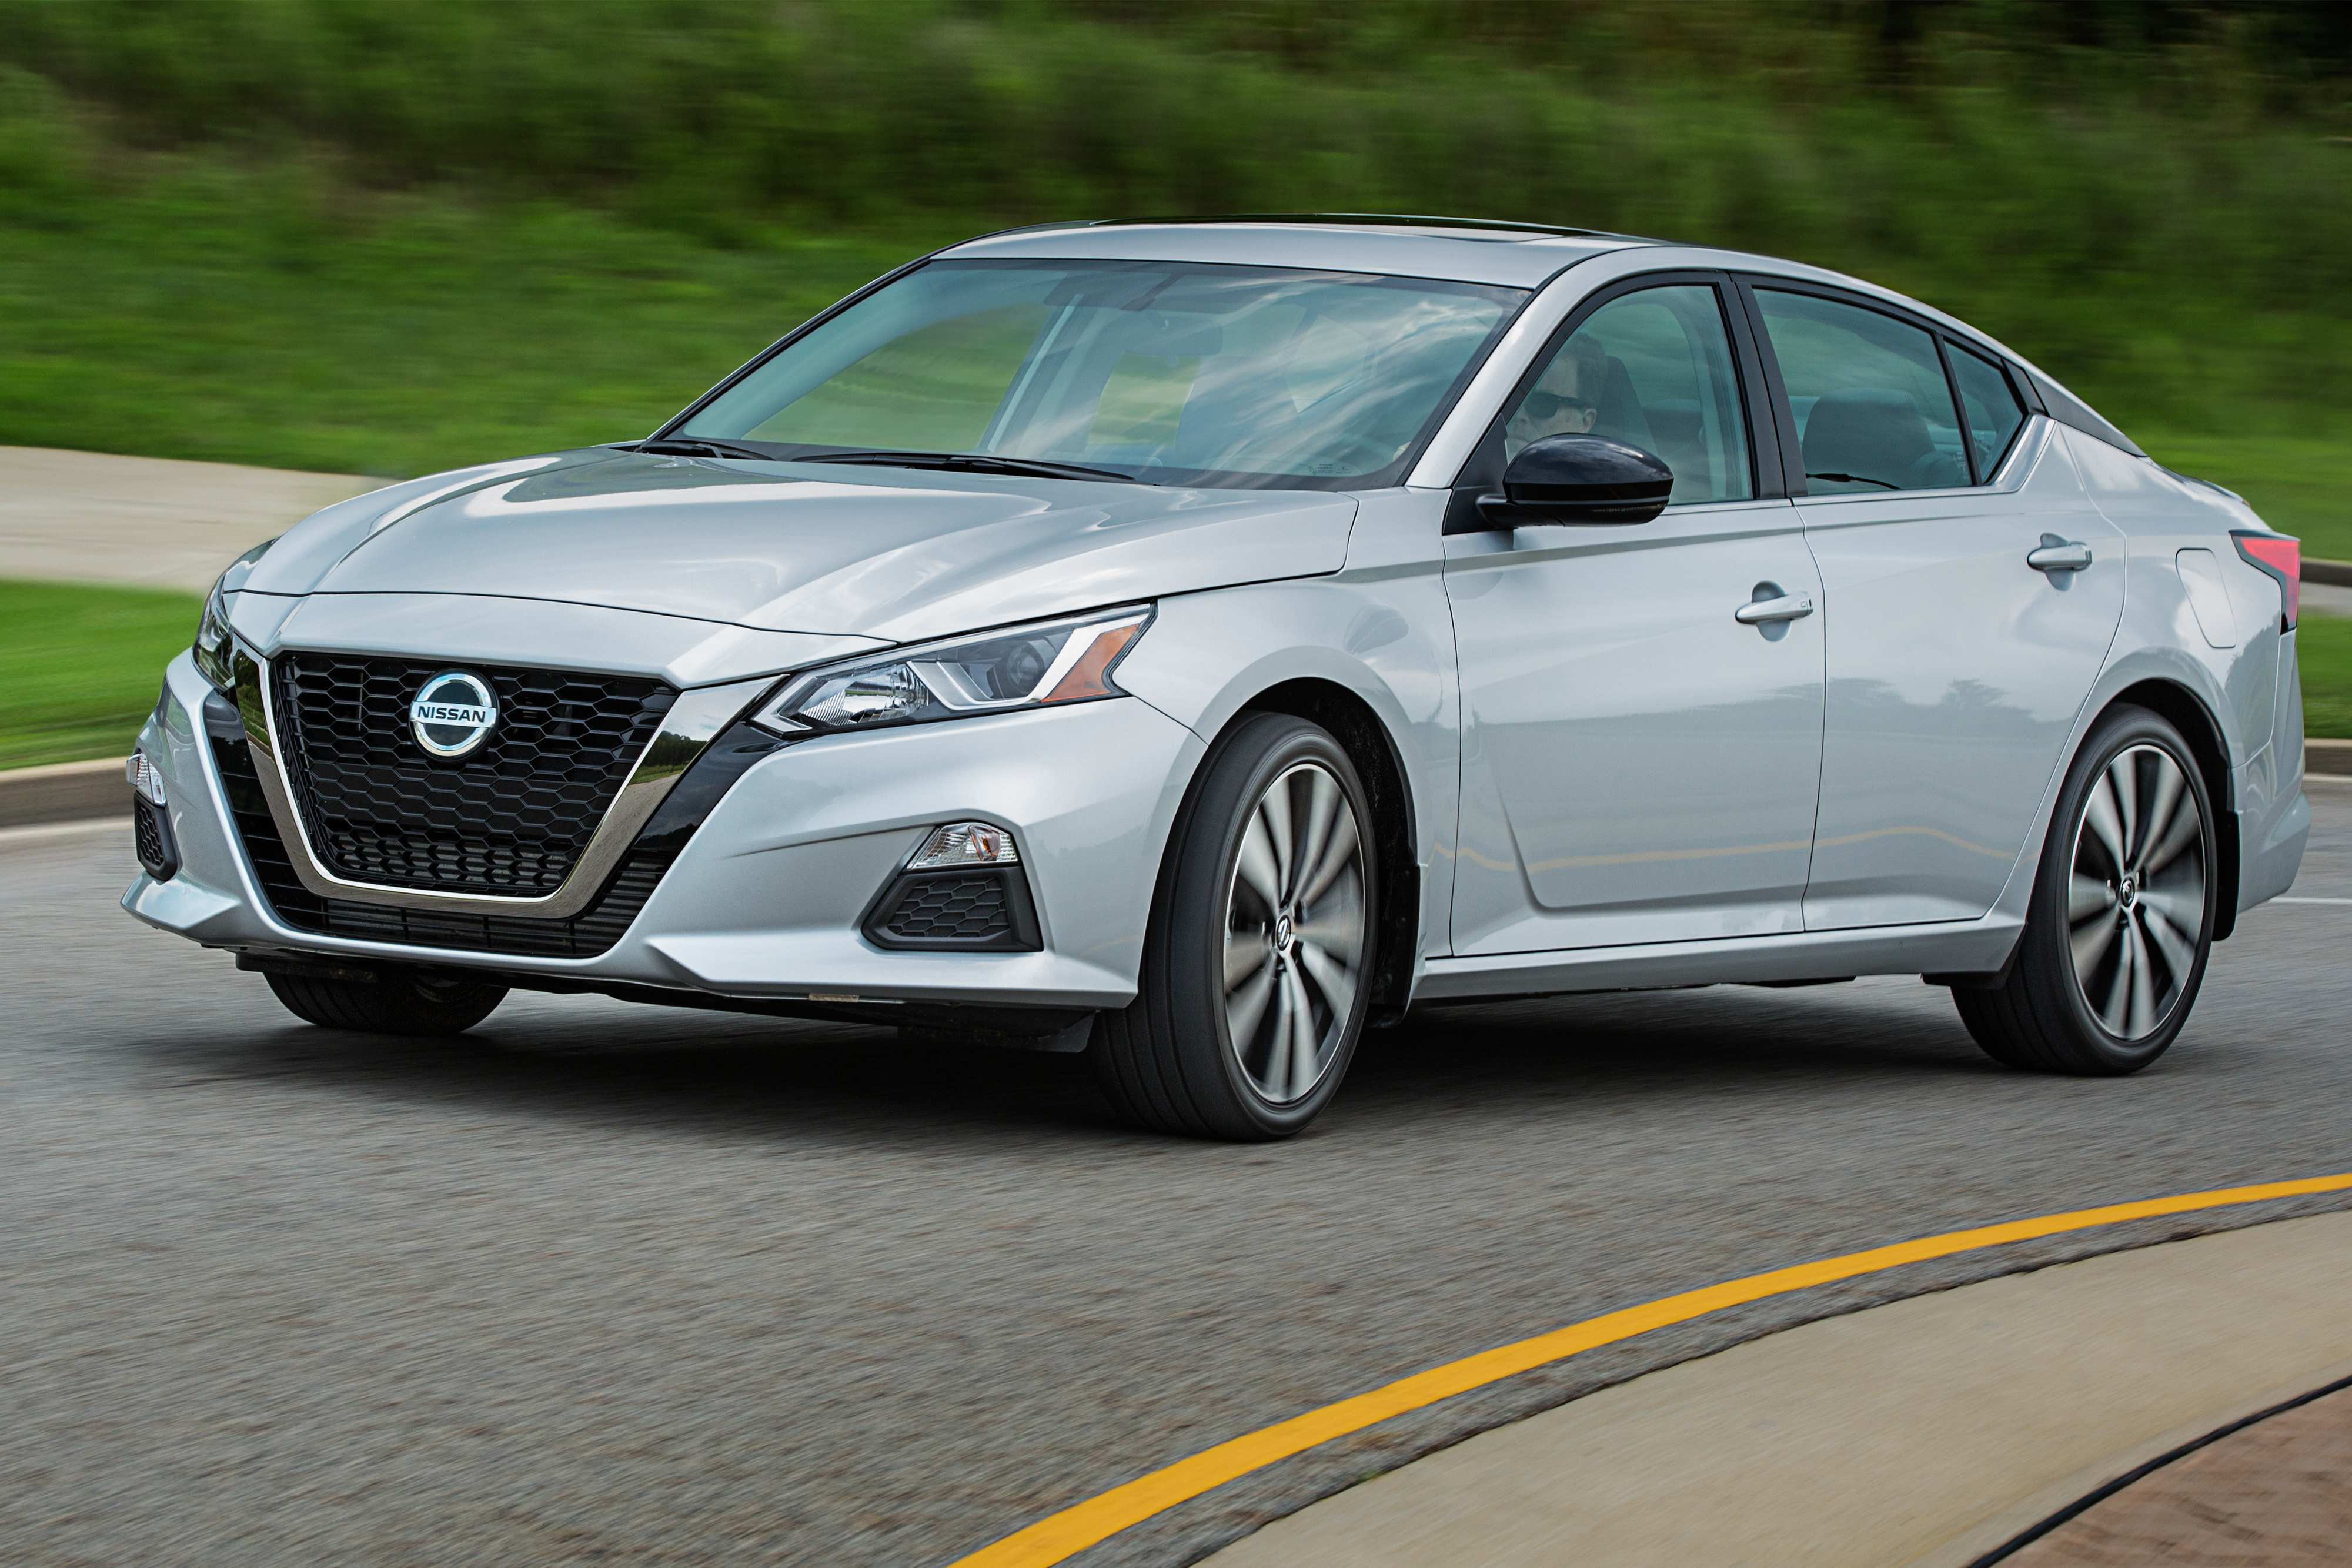 83 Gallery of Nissan Cars 2020 Review by Nissan Cars 2020